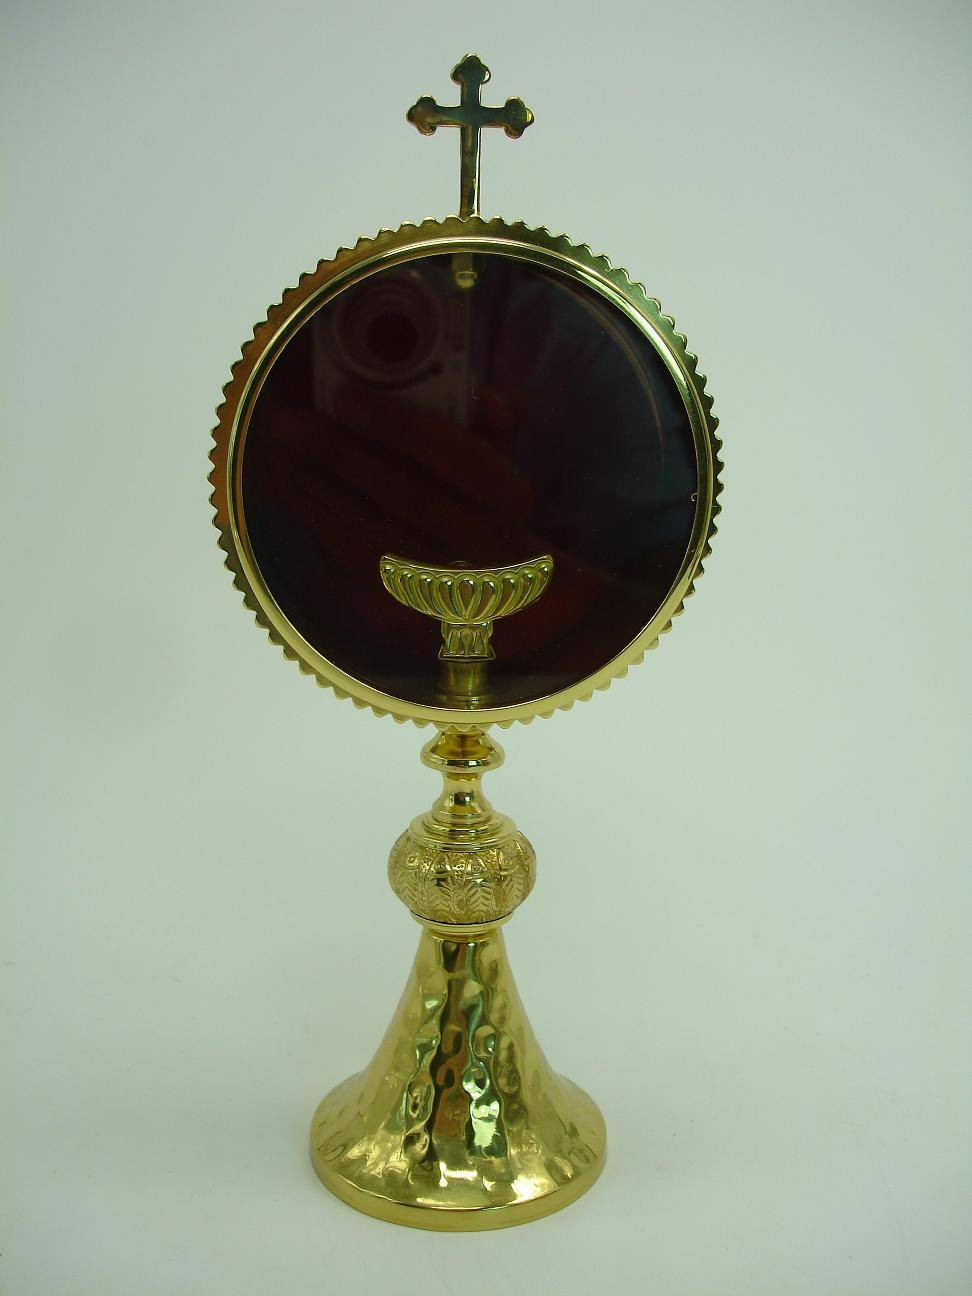 Ornate Religious Reliquary Excellent church articles Monstrance collections #X9